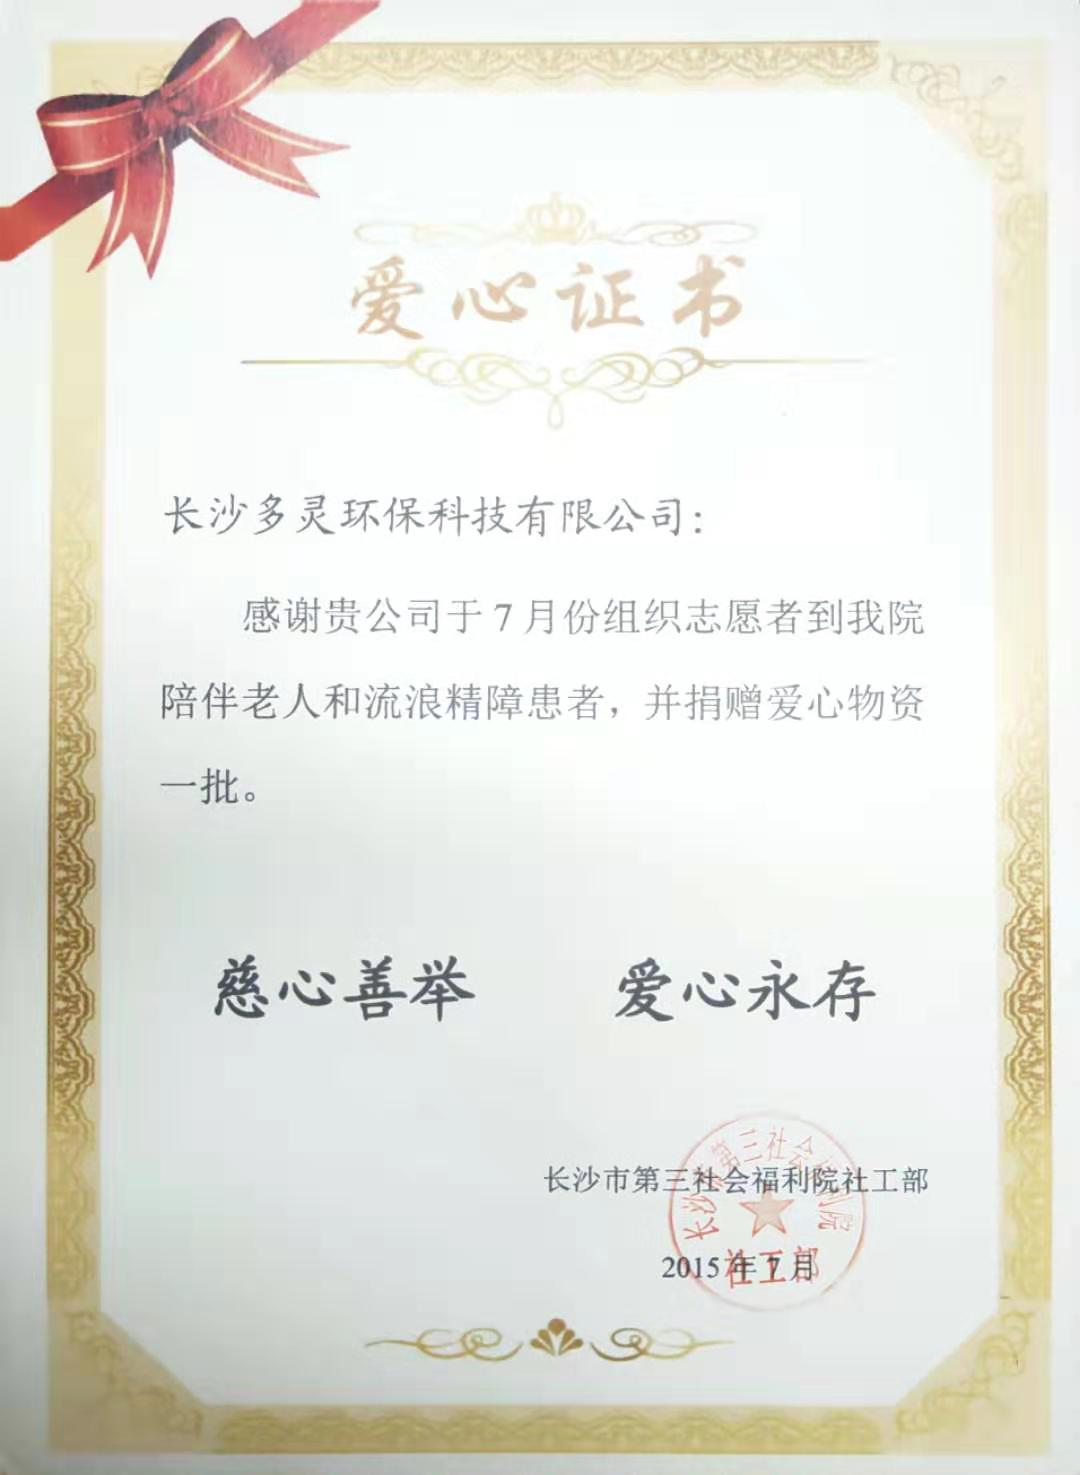 Certificate of love